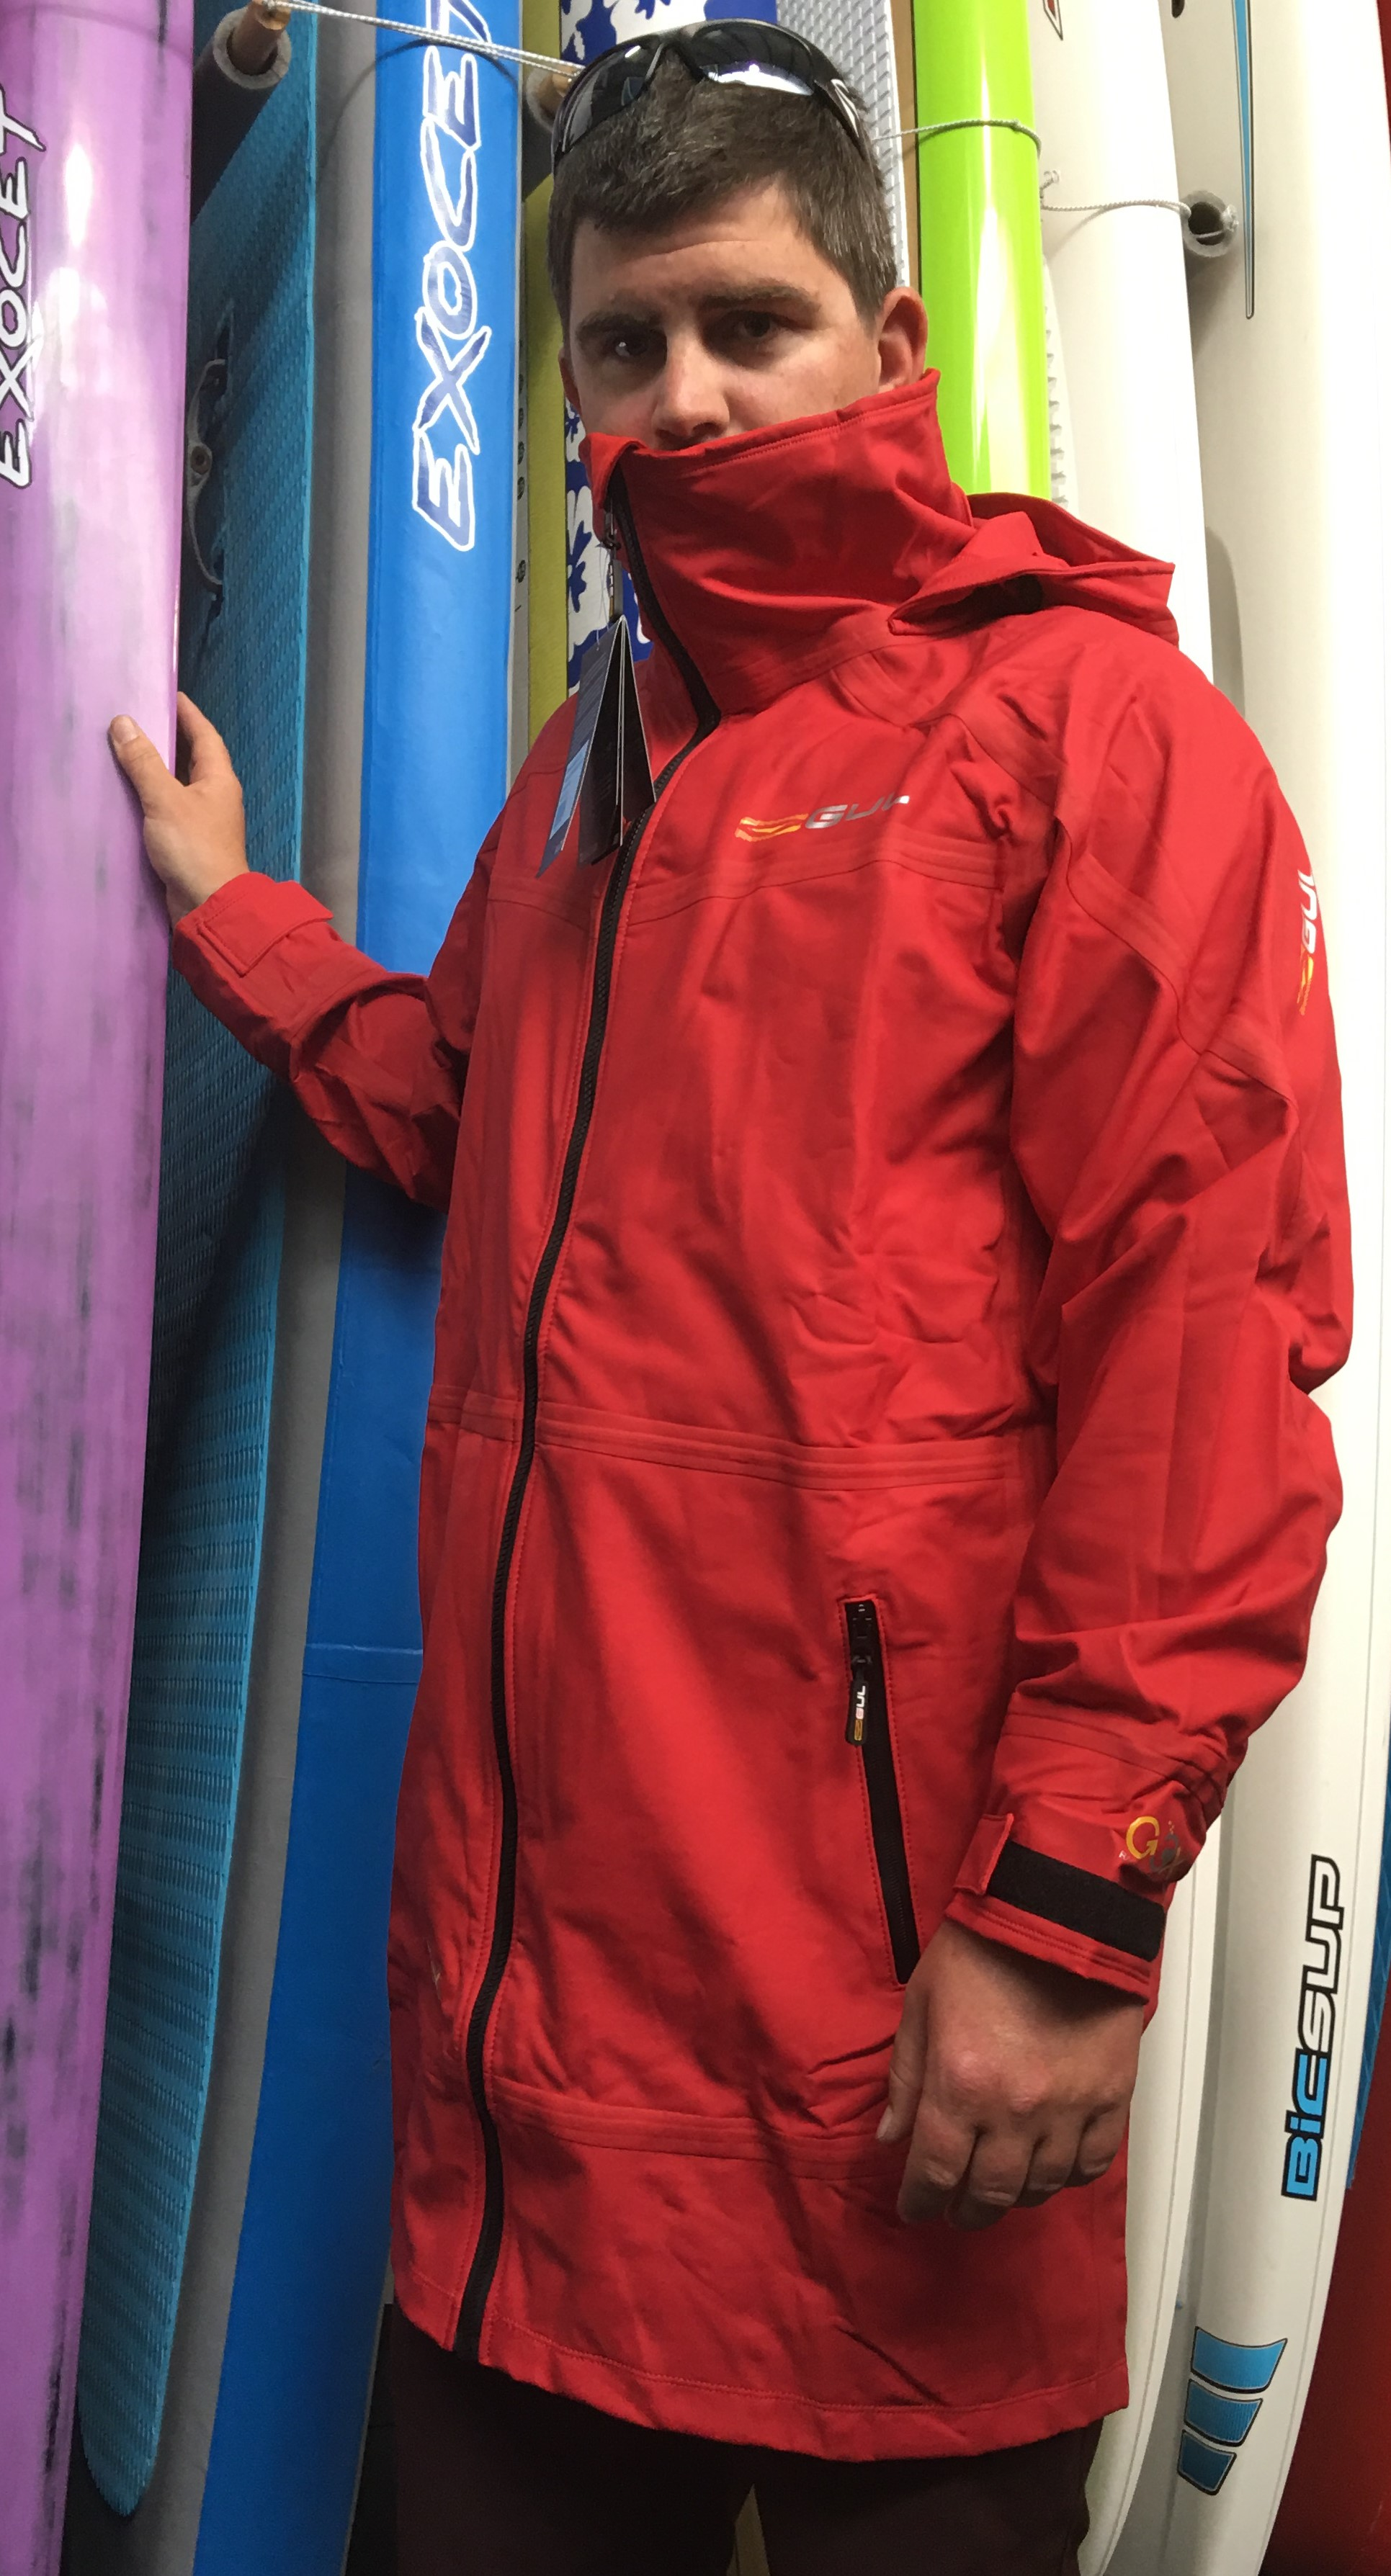 GM0386: GUL Racelite Rigging Jacket - gm0386 red  2 _2_.jpg